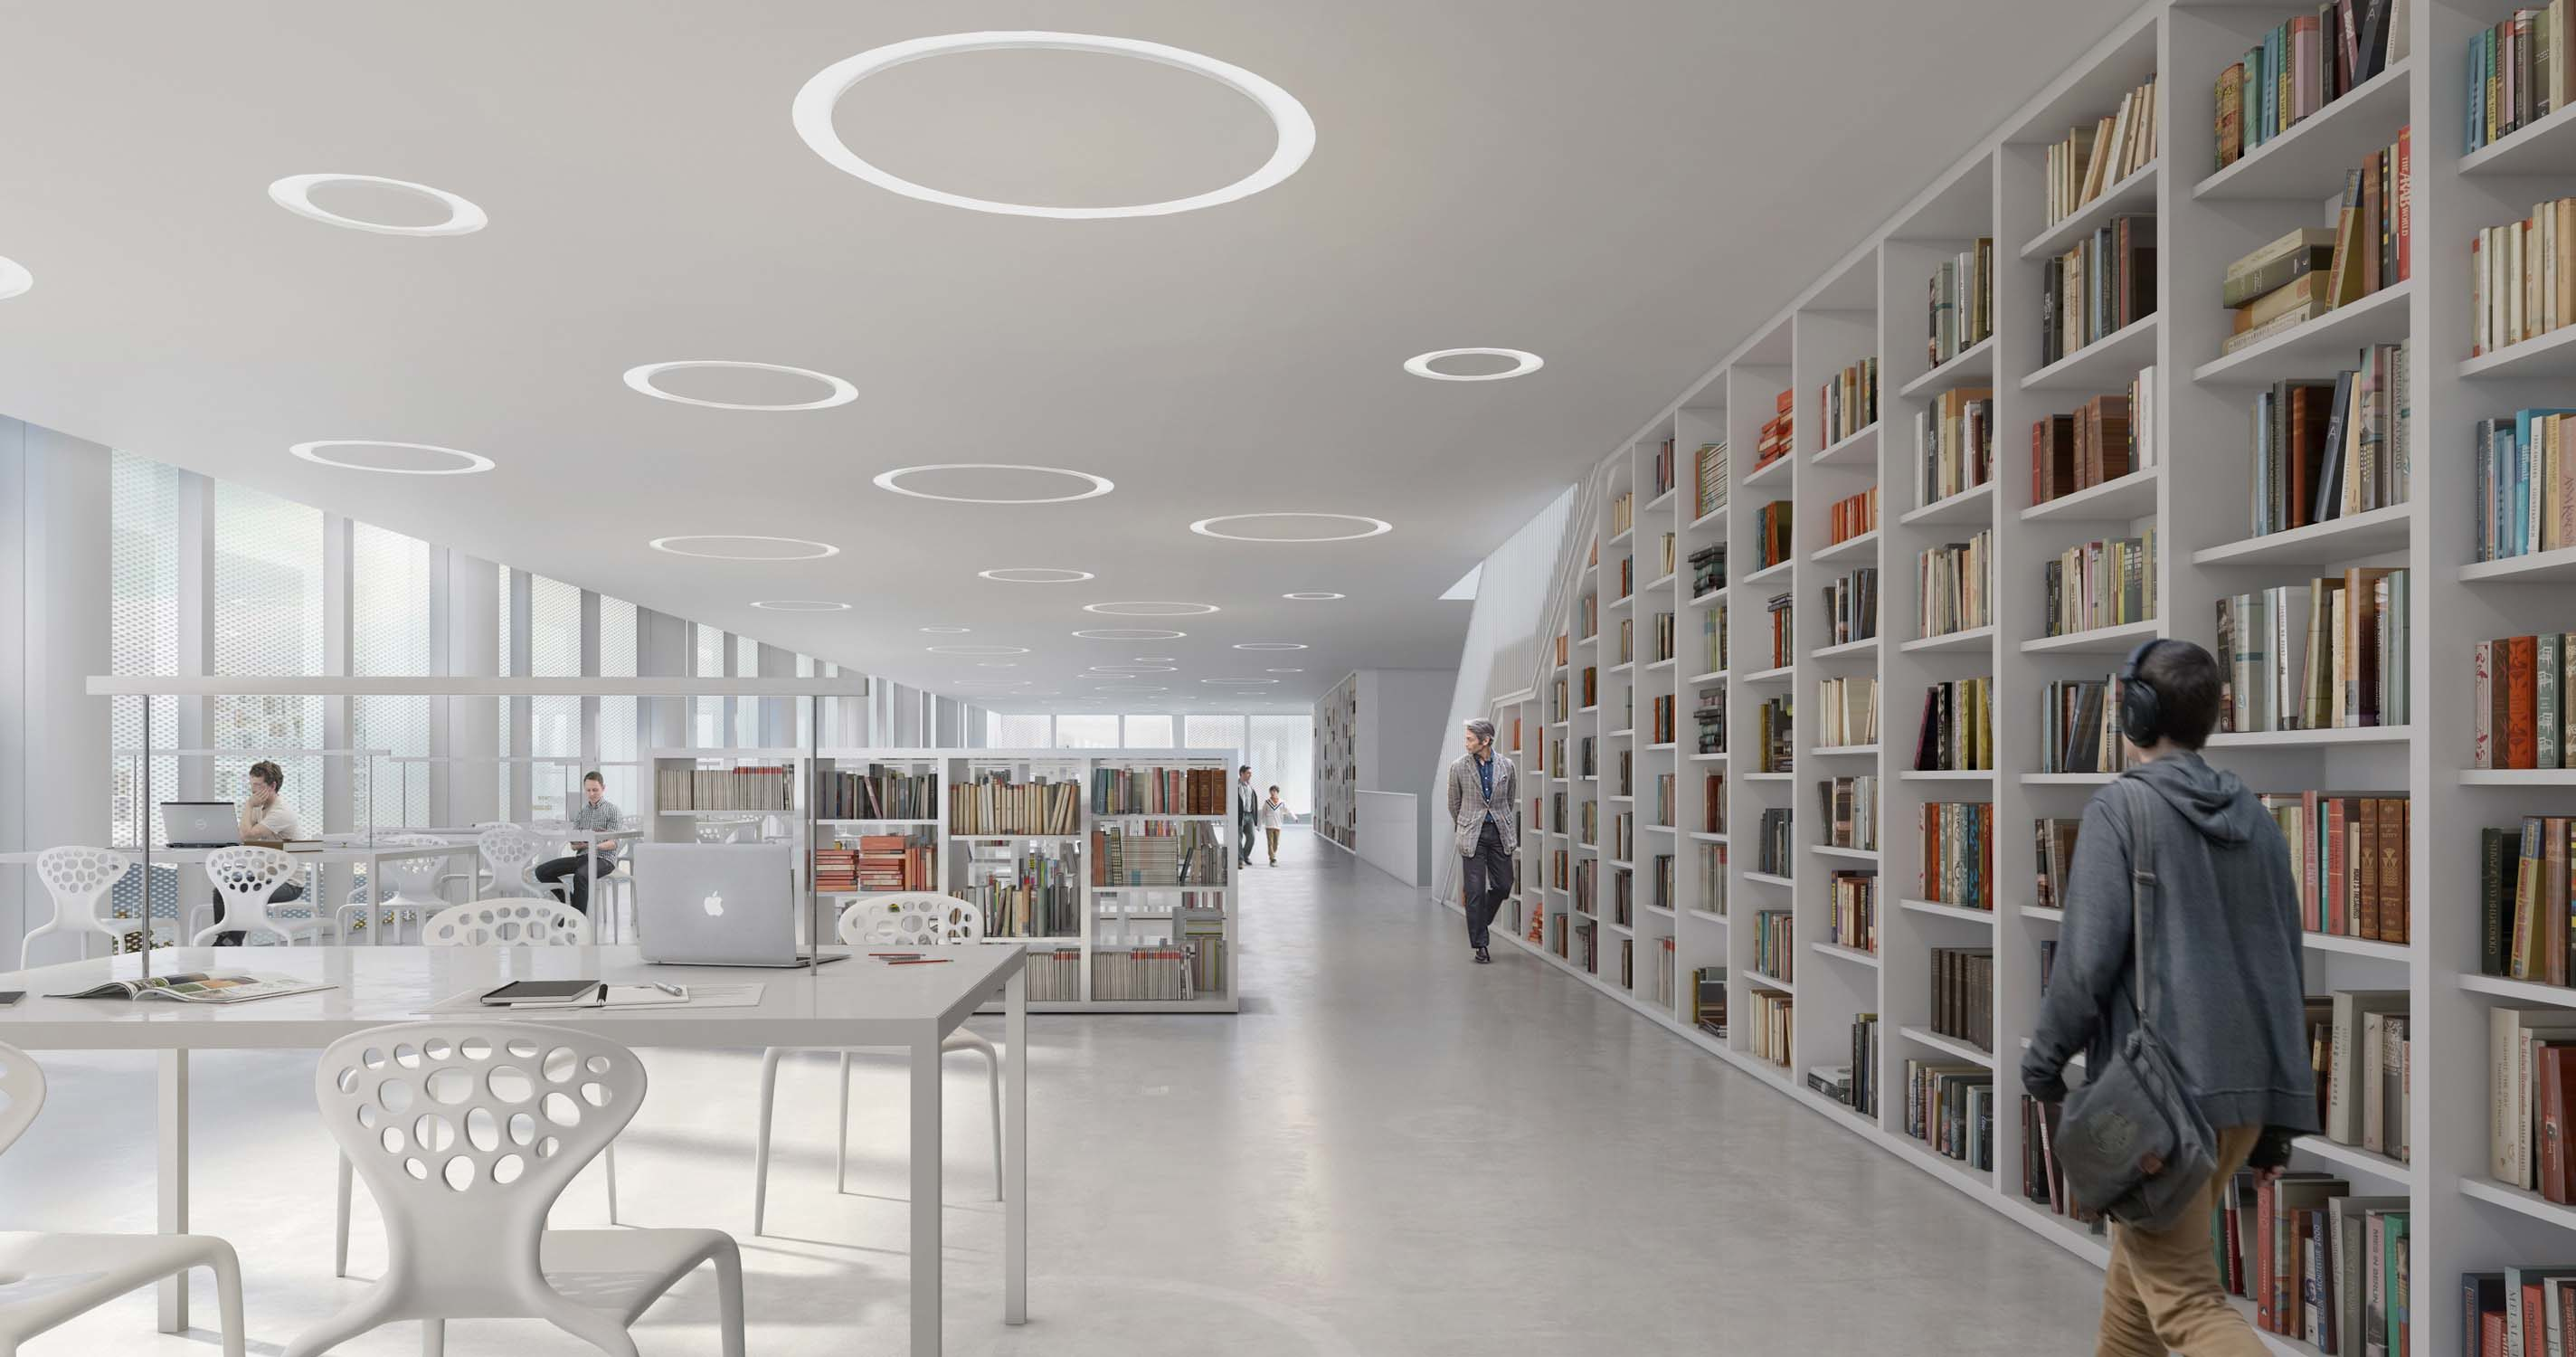 New library in Varna – Andrea maffei Architects – 2016